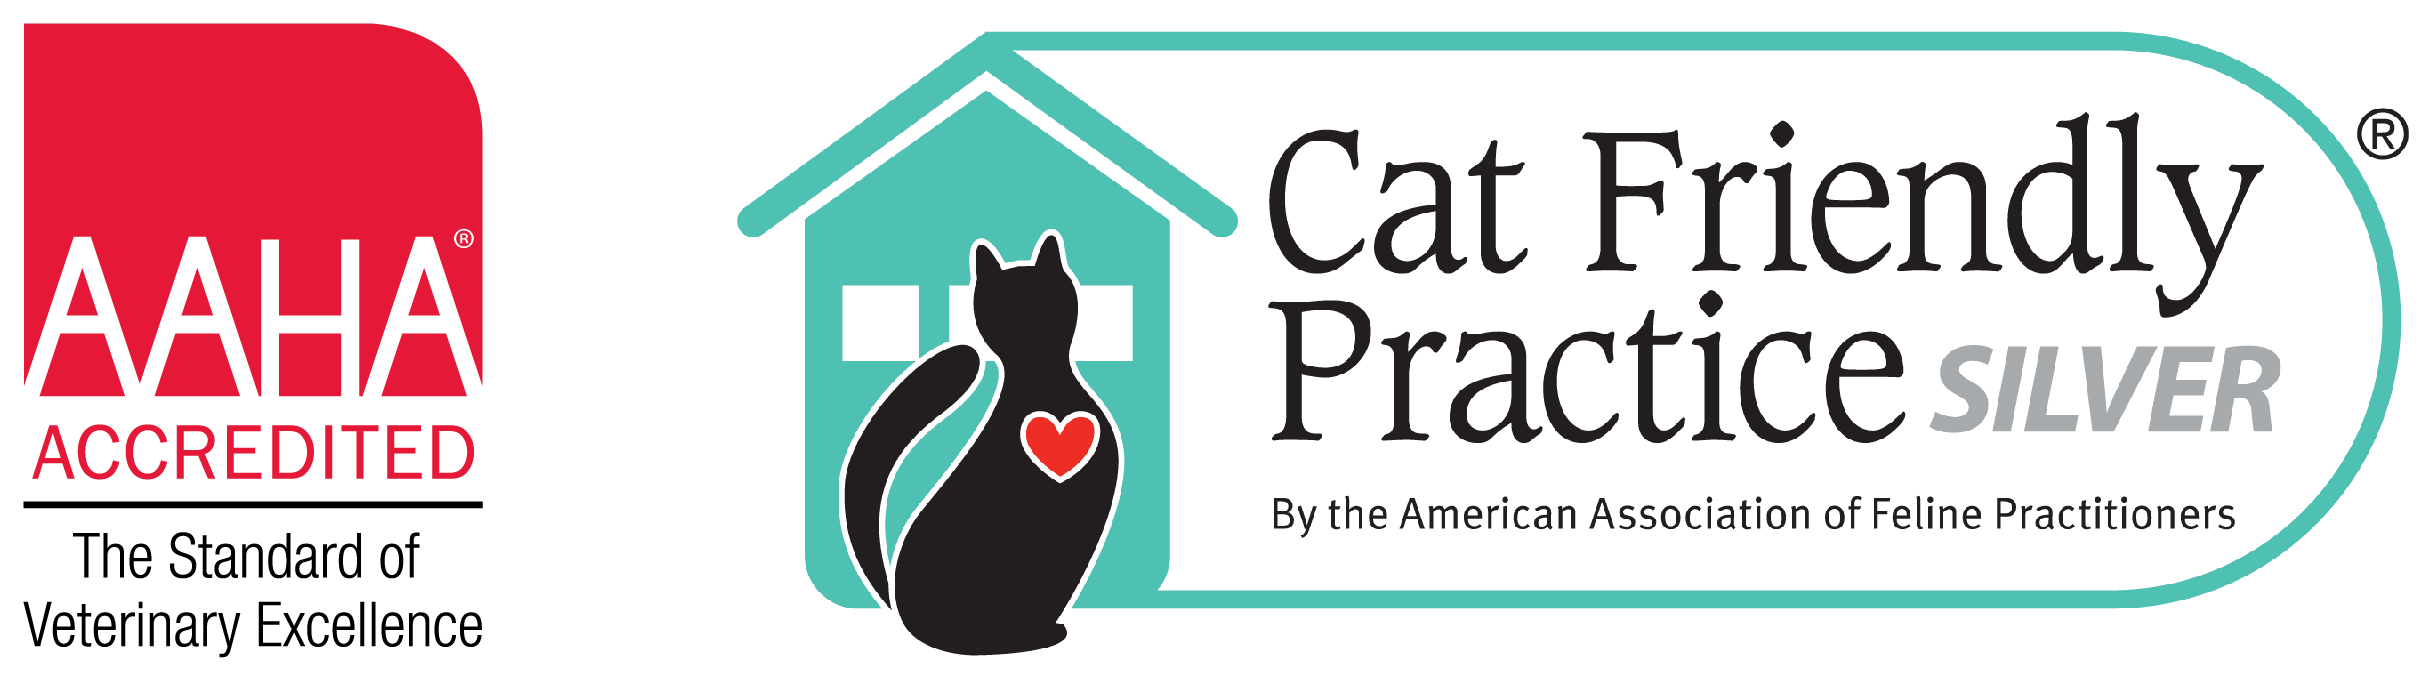 AAHA and Cat Friendly Practice logo